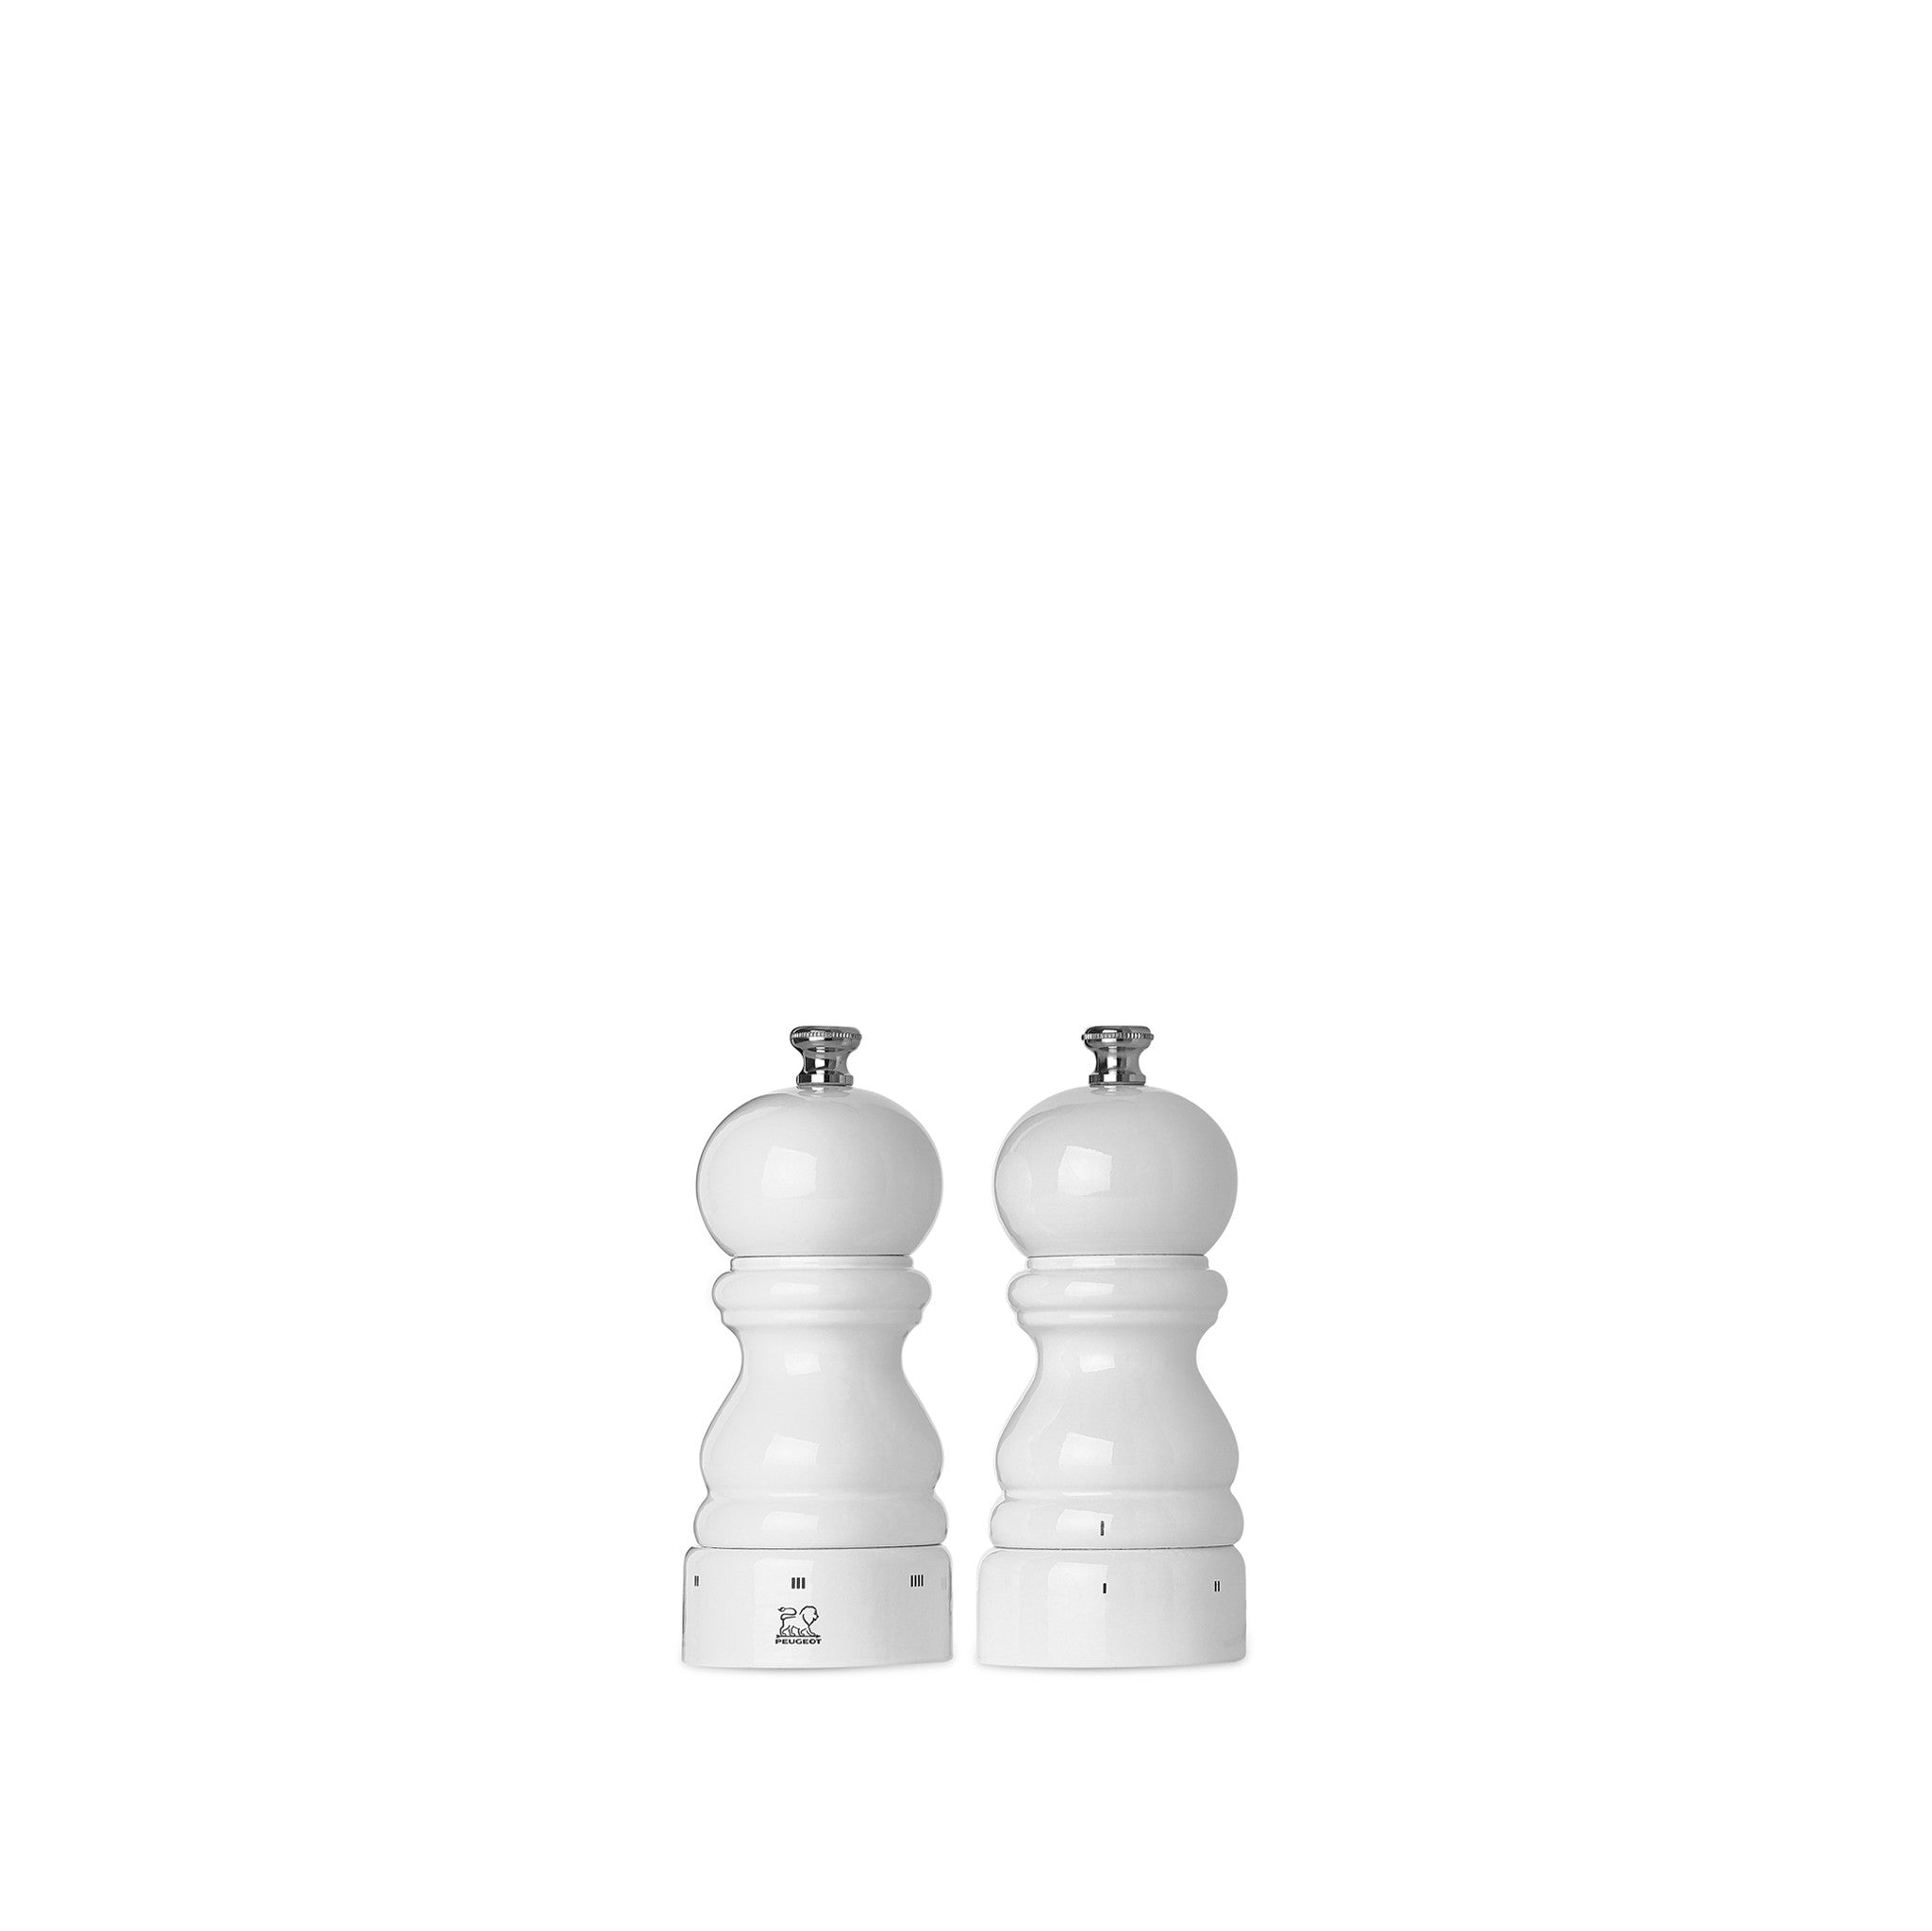 Peugeot Paris White Lacquered Salt & Pepper Mill Set, 12cm